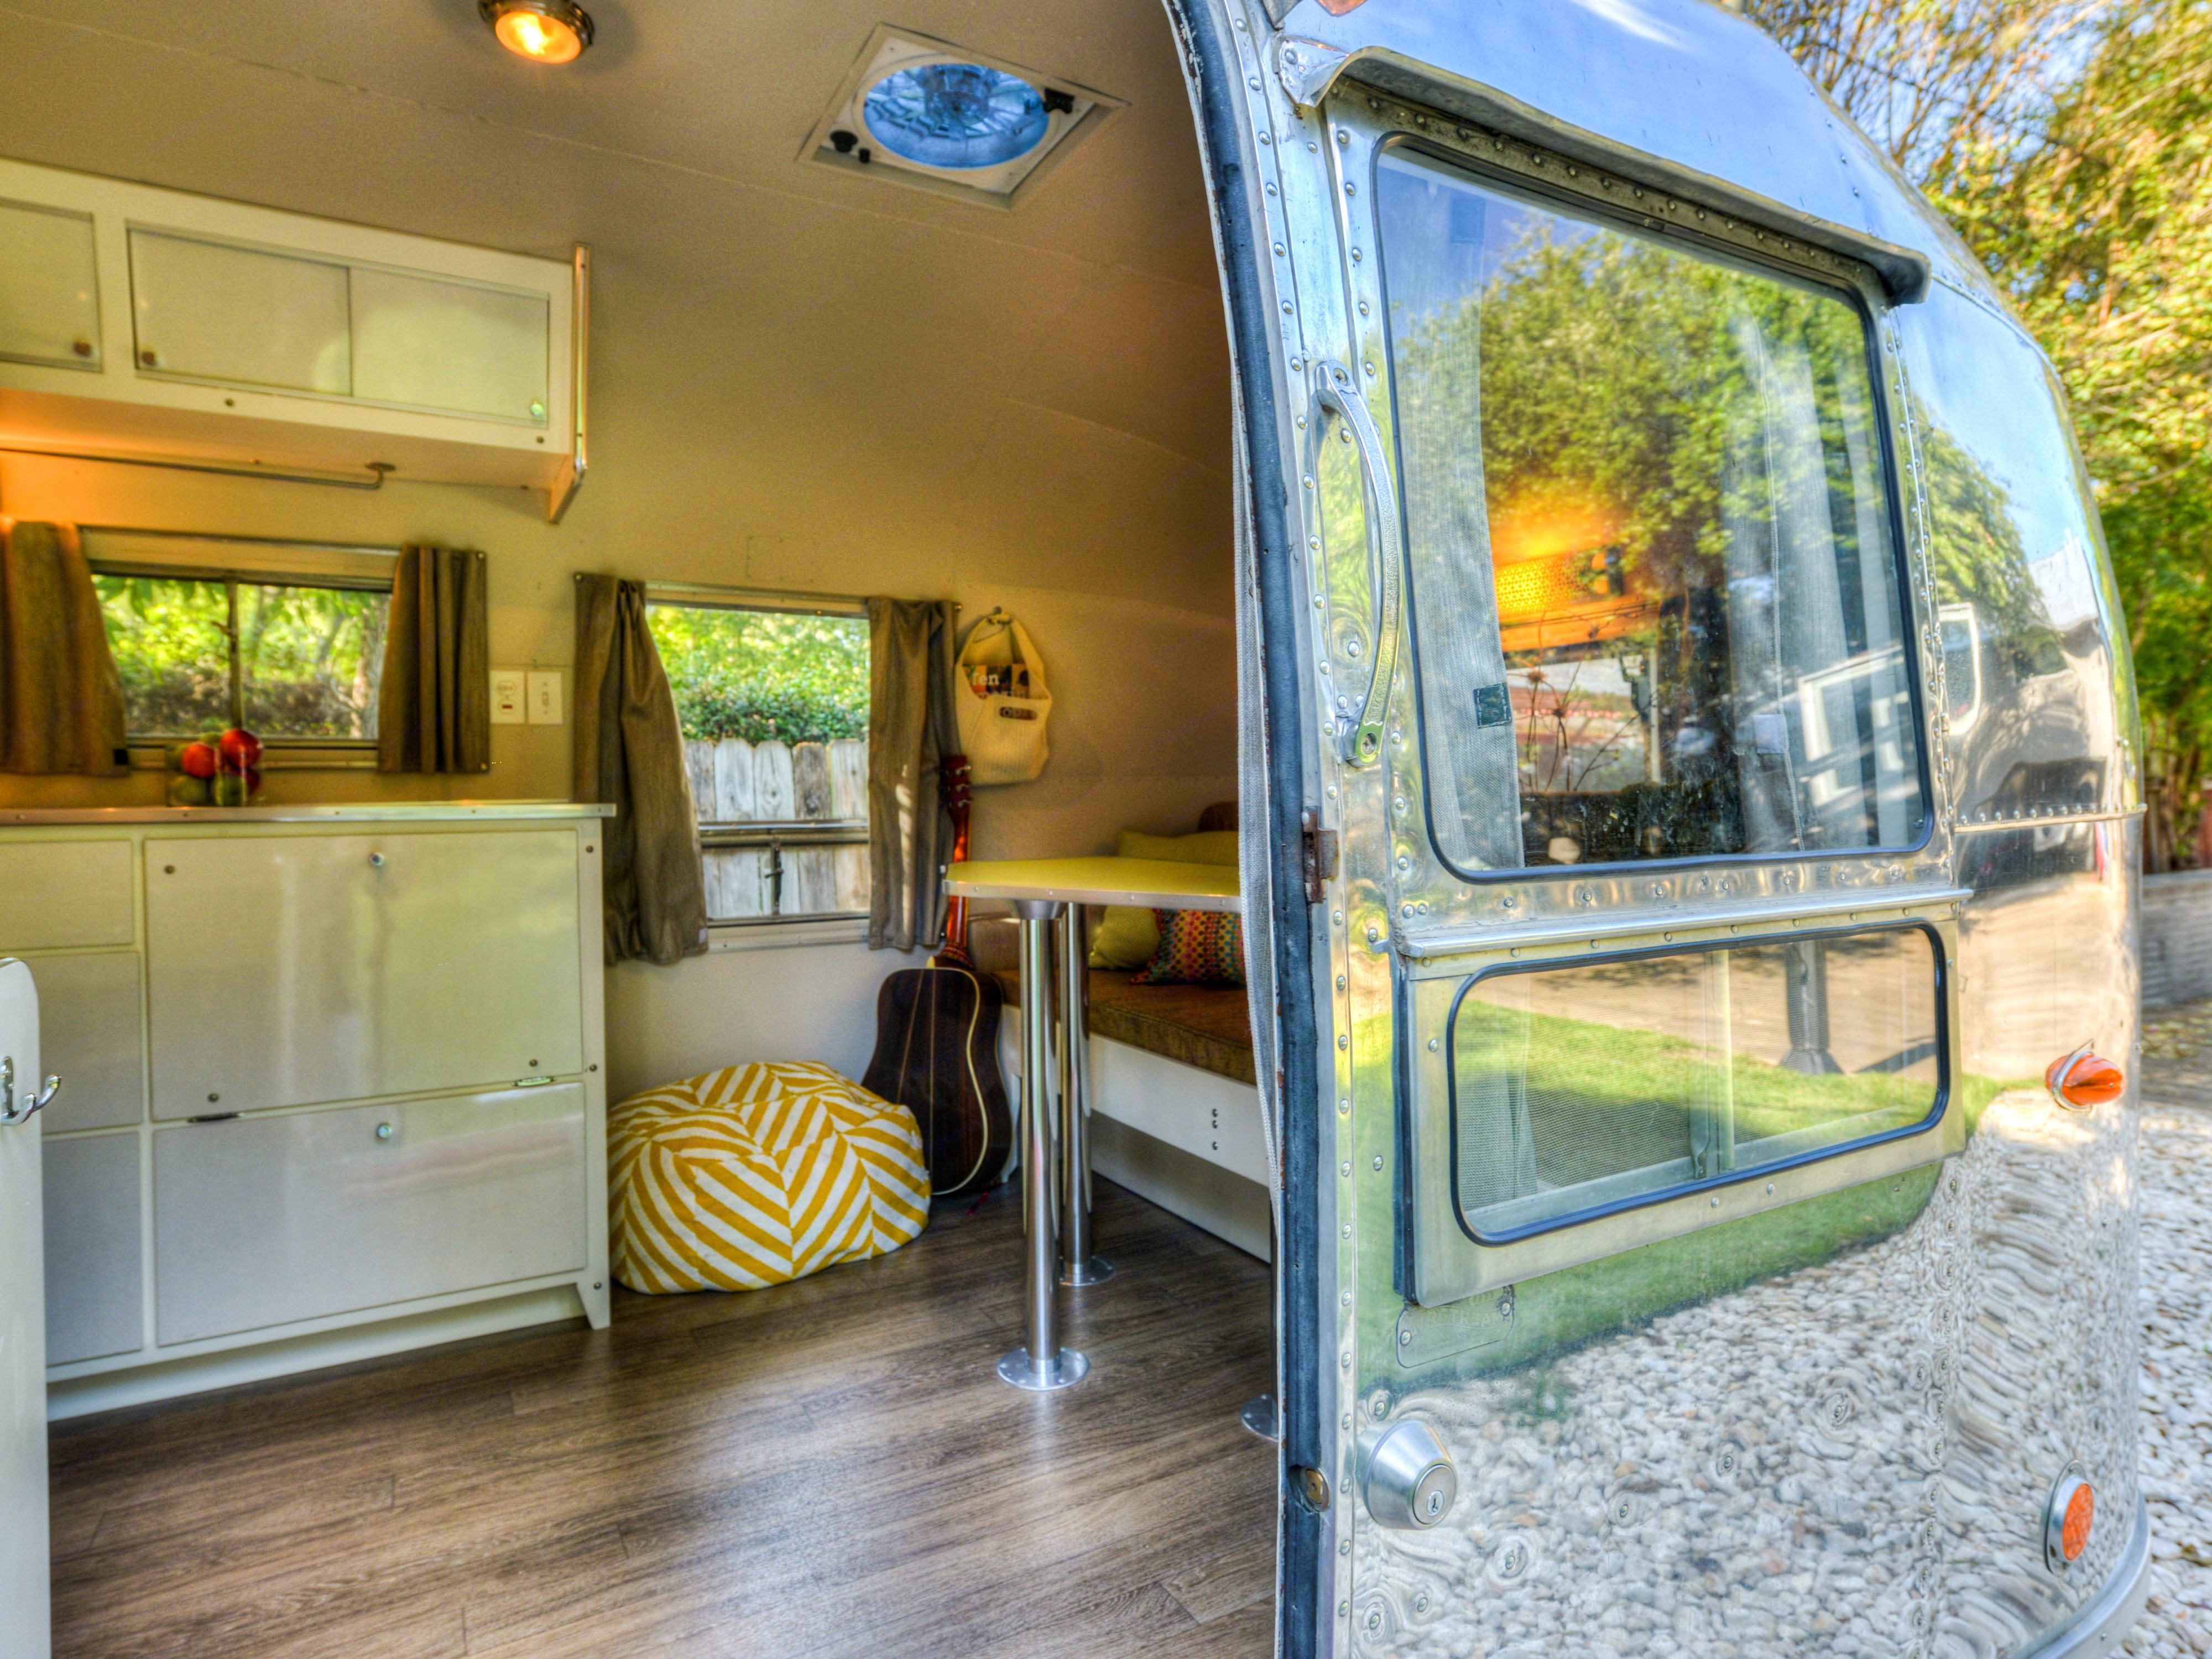 Spacious, functional layout with ample storage.. Airstream Crusier 1958